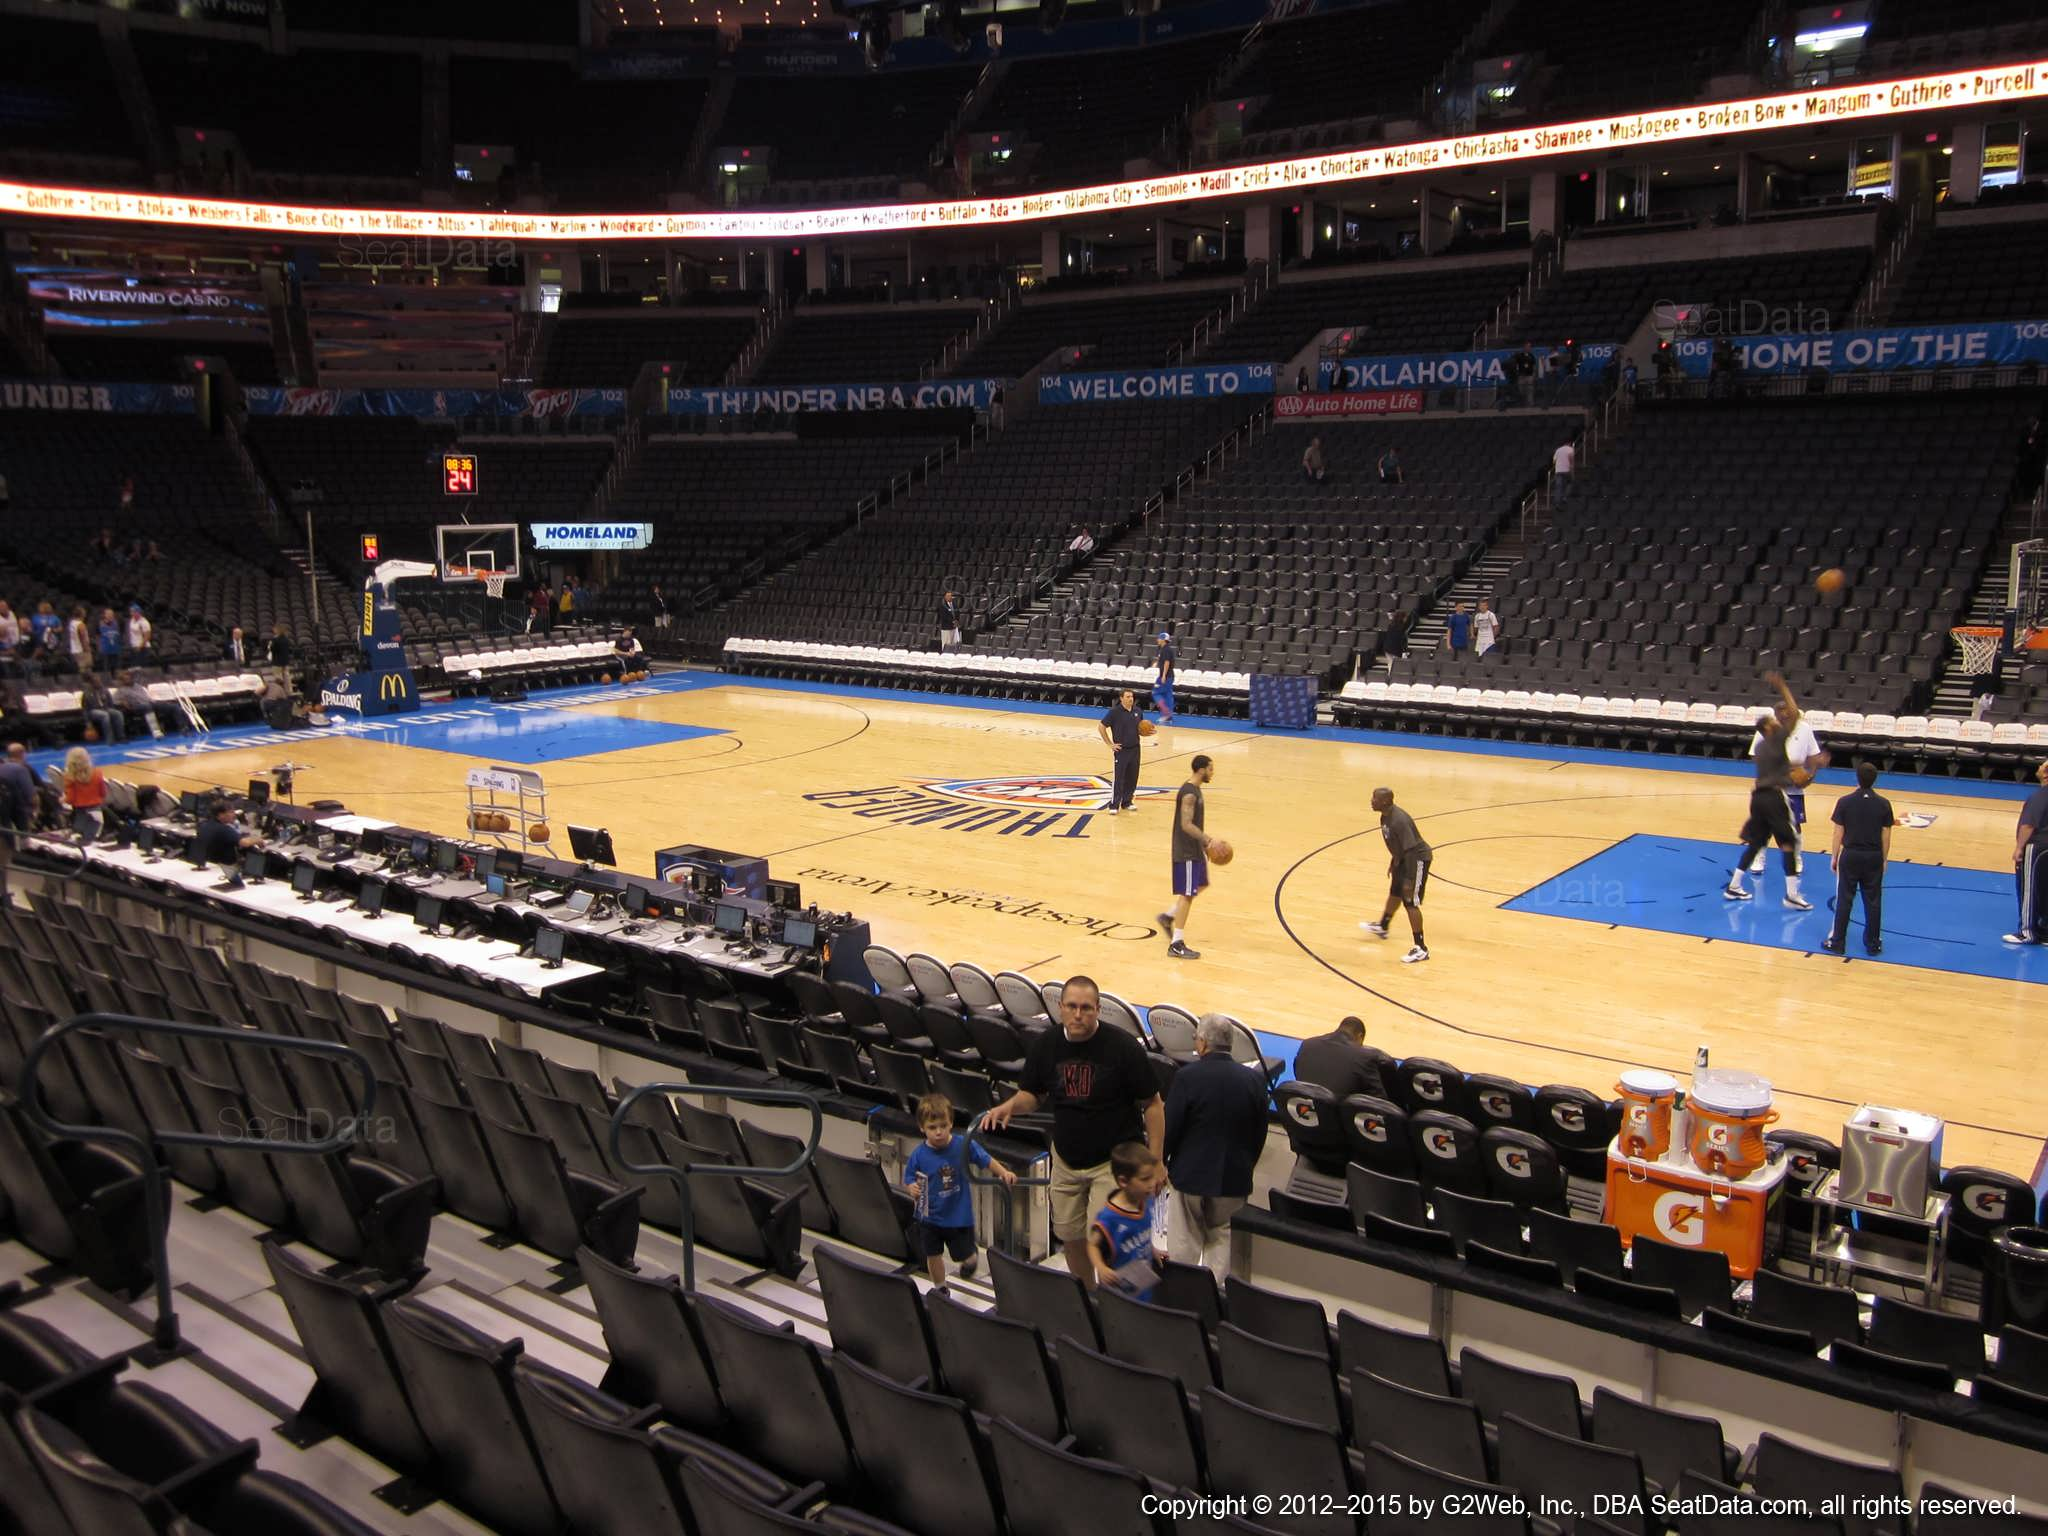 Seat view from section 114 at Chesapeake Energy Arena, home of the Oklahoma City Thunder